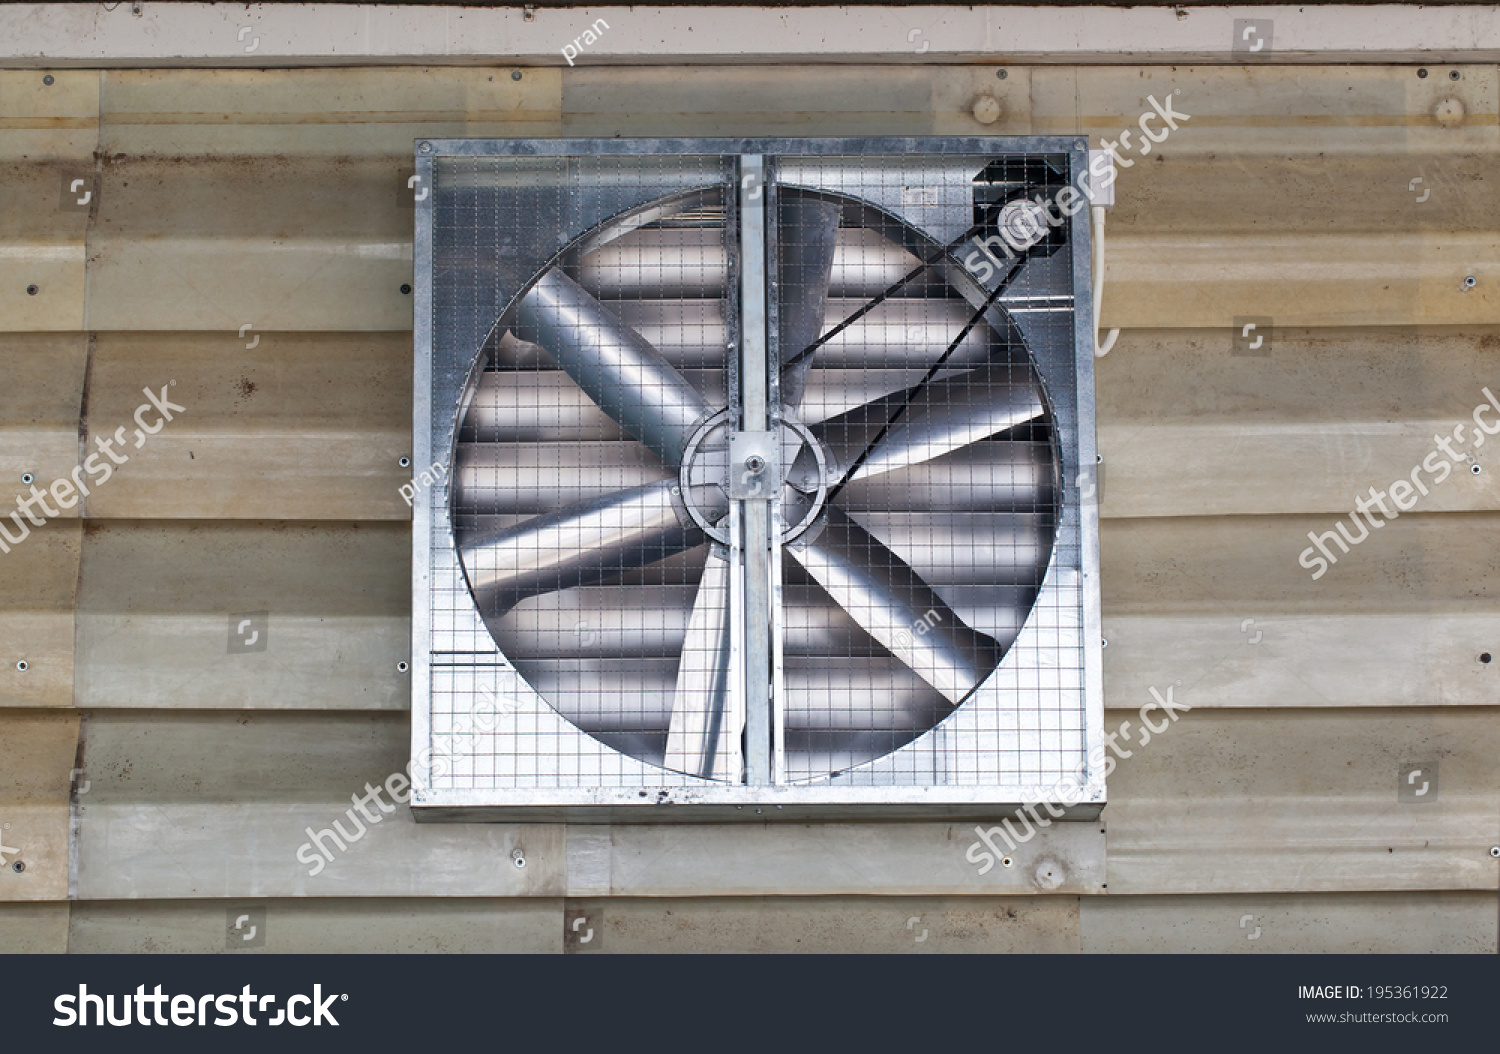 Building Exhaust Fans : Industrial building exhaust fan and windows stock photo